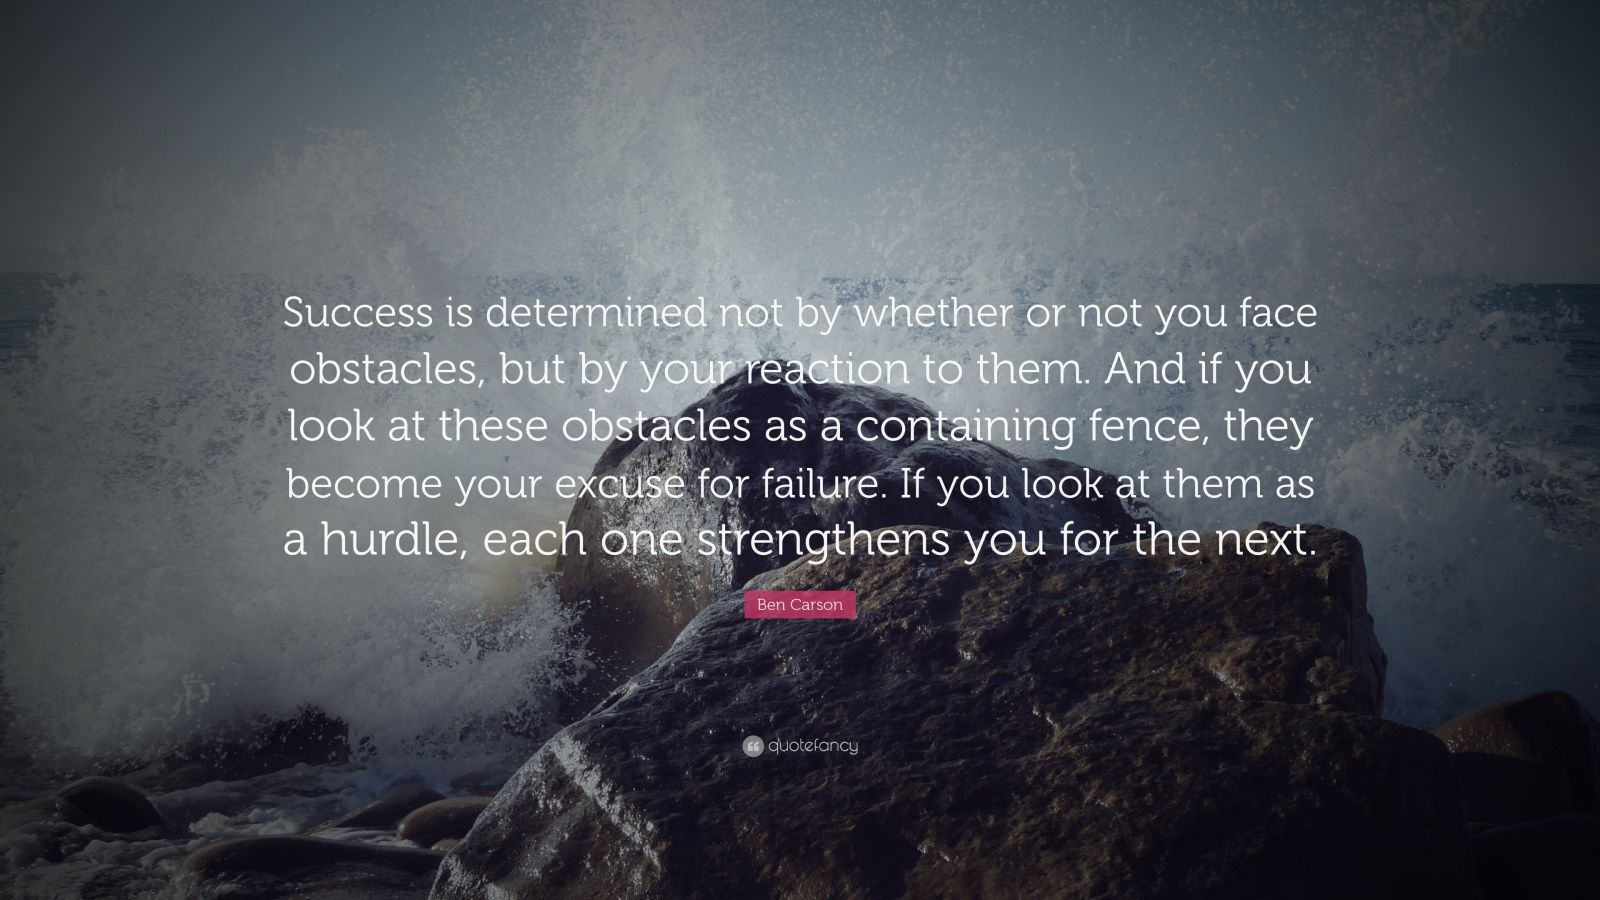 Theodore Roosevelt Wallpaper Quote Ben Carson Quote Success Is Determined Not By Whether Or